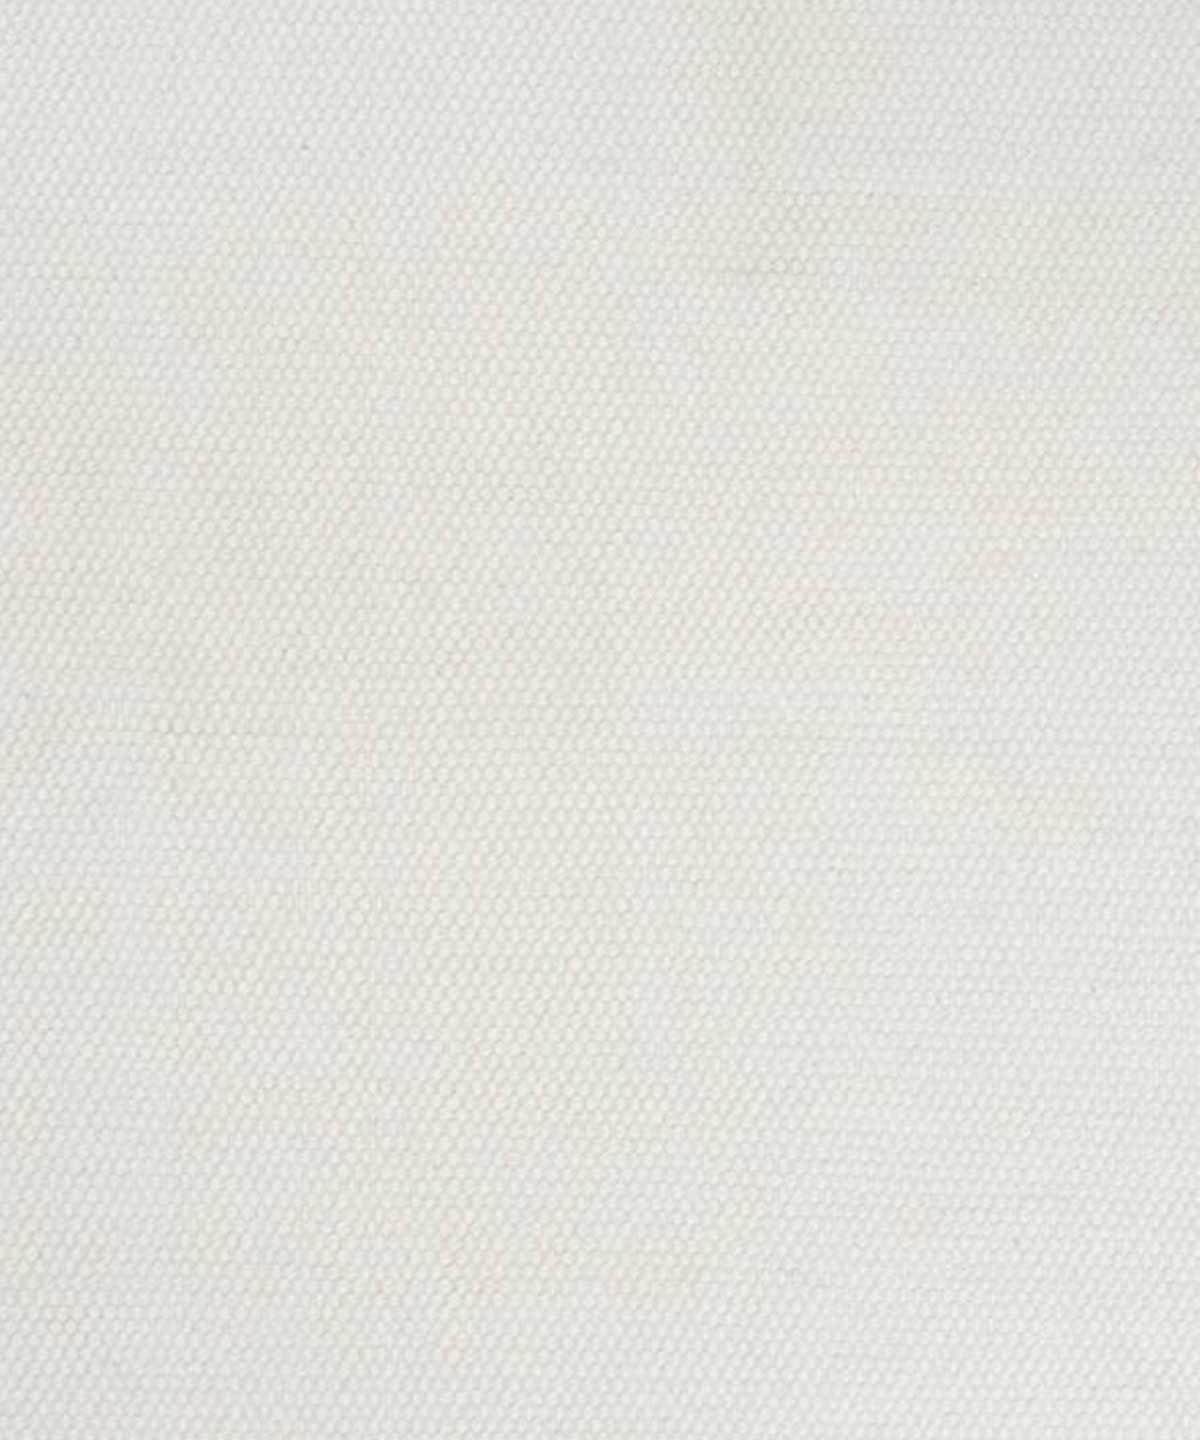 Asko Rug in White by Loloi | TRNK